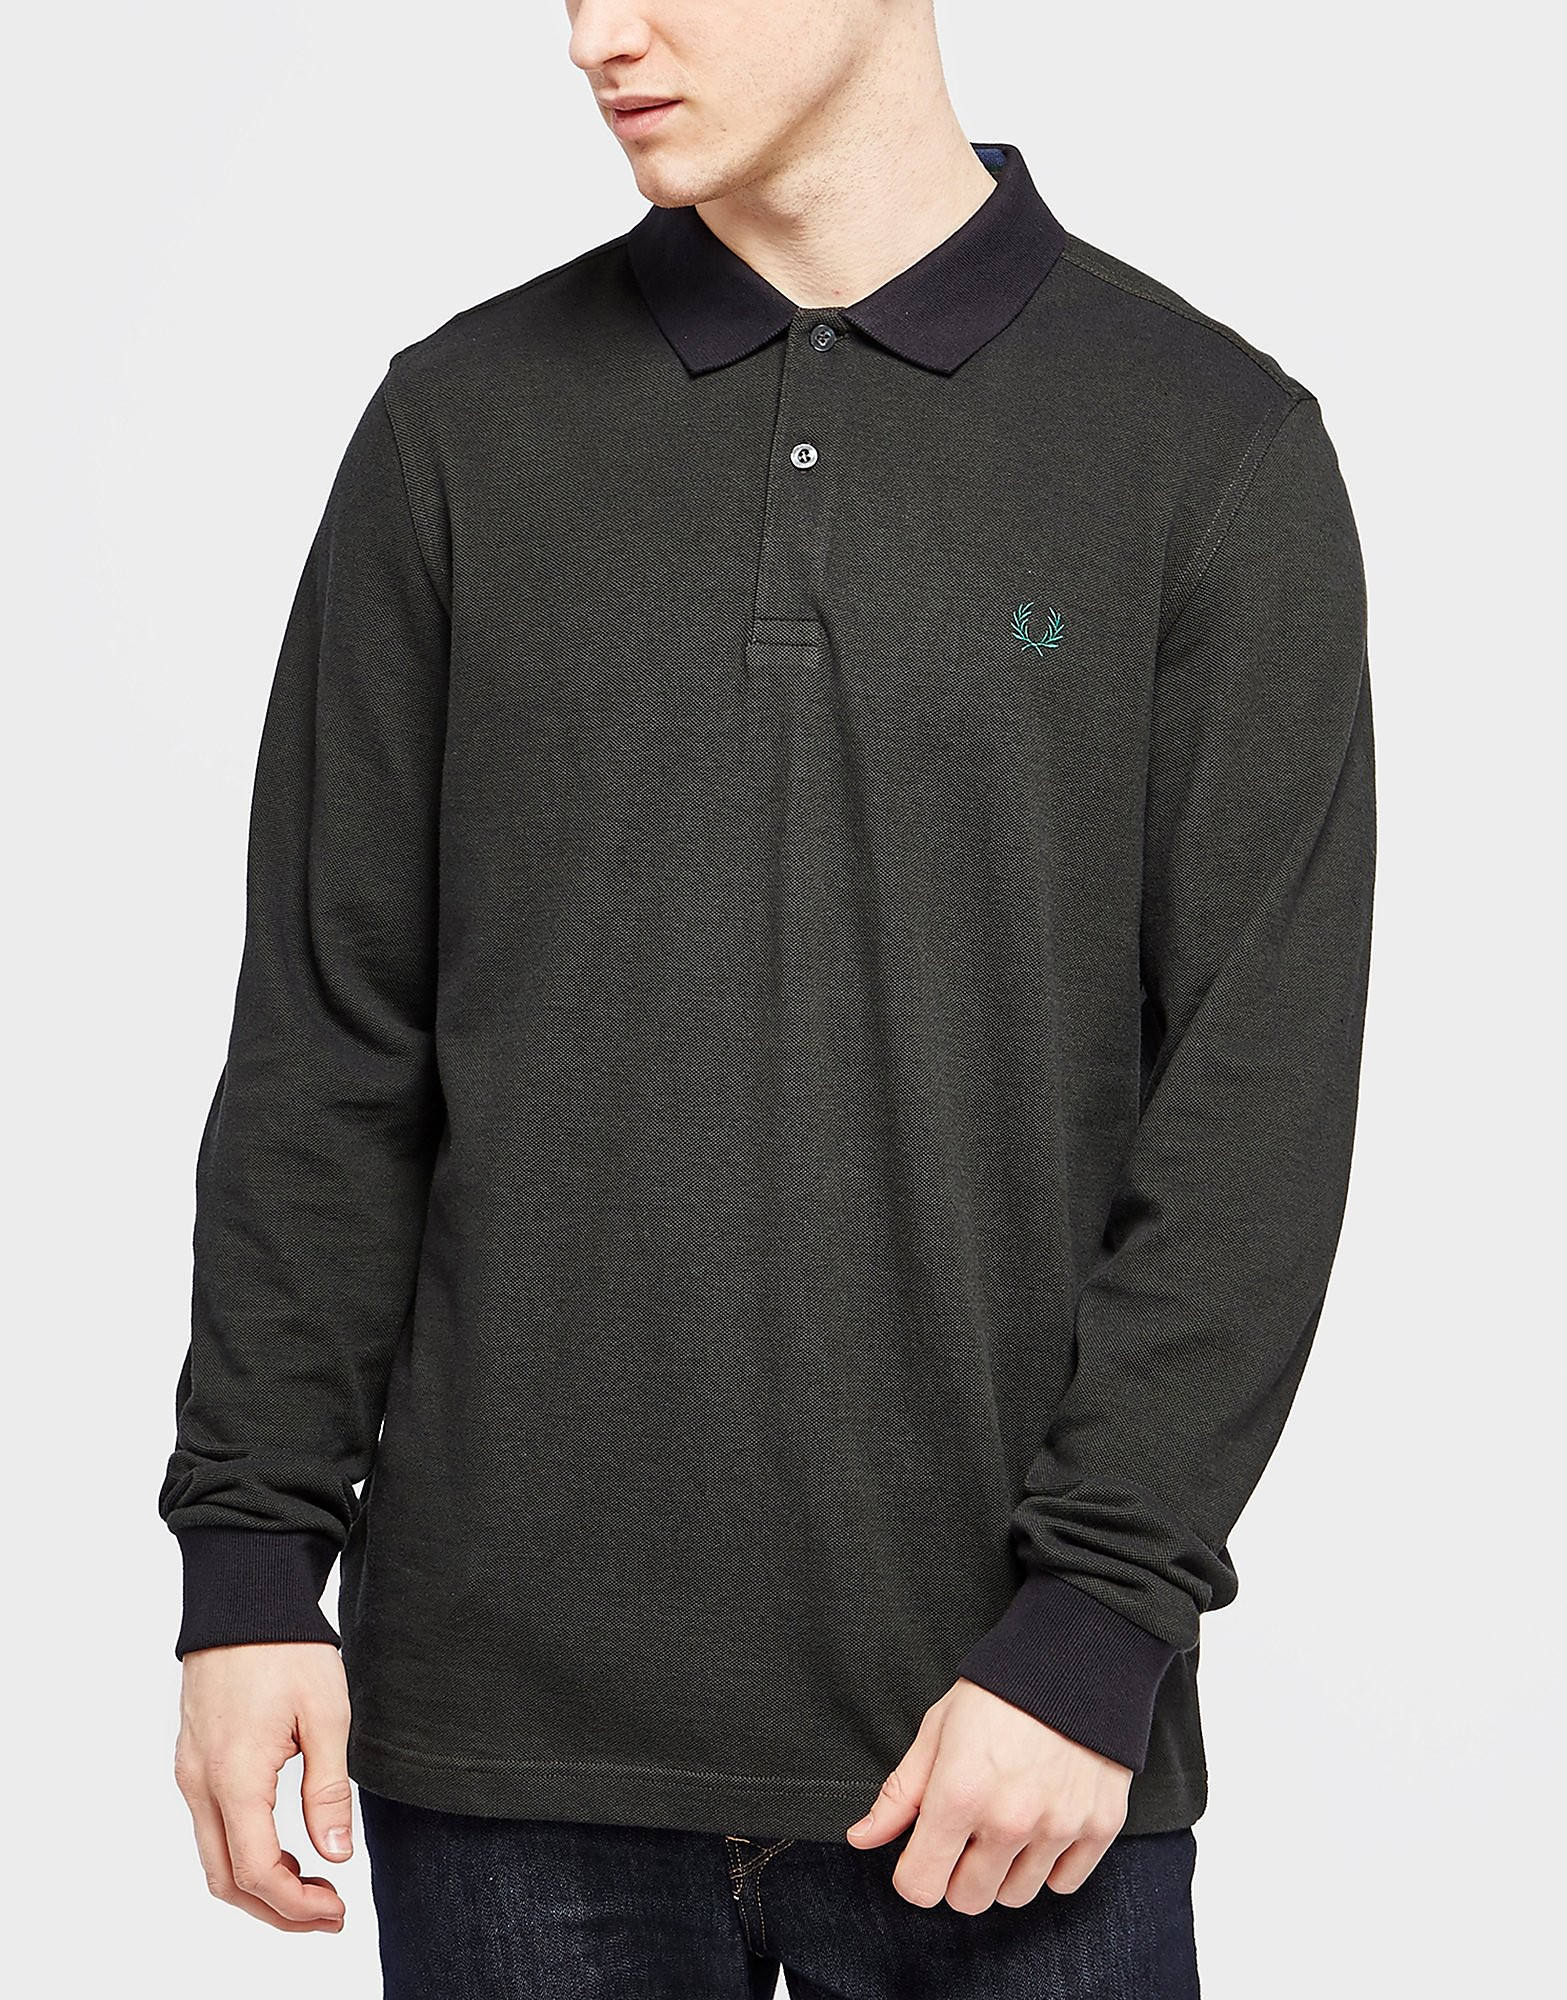 Fred Perry Long Sleeve Pique Polo Shirt - Exclusive